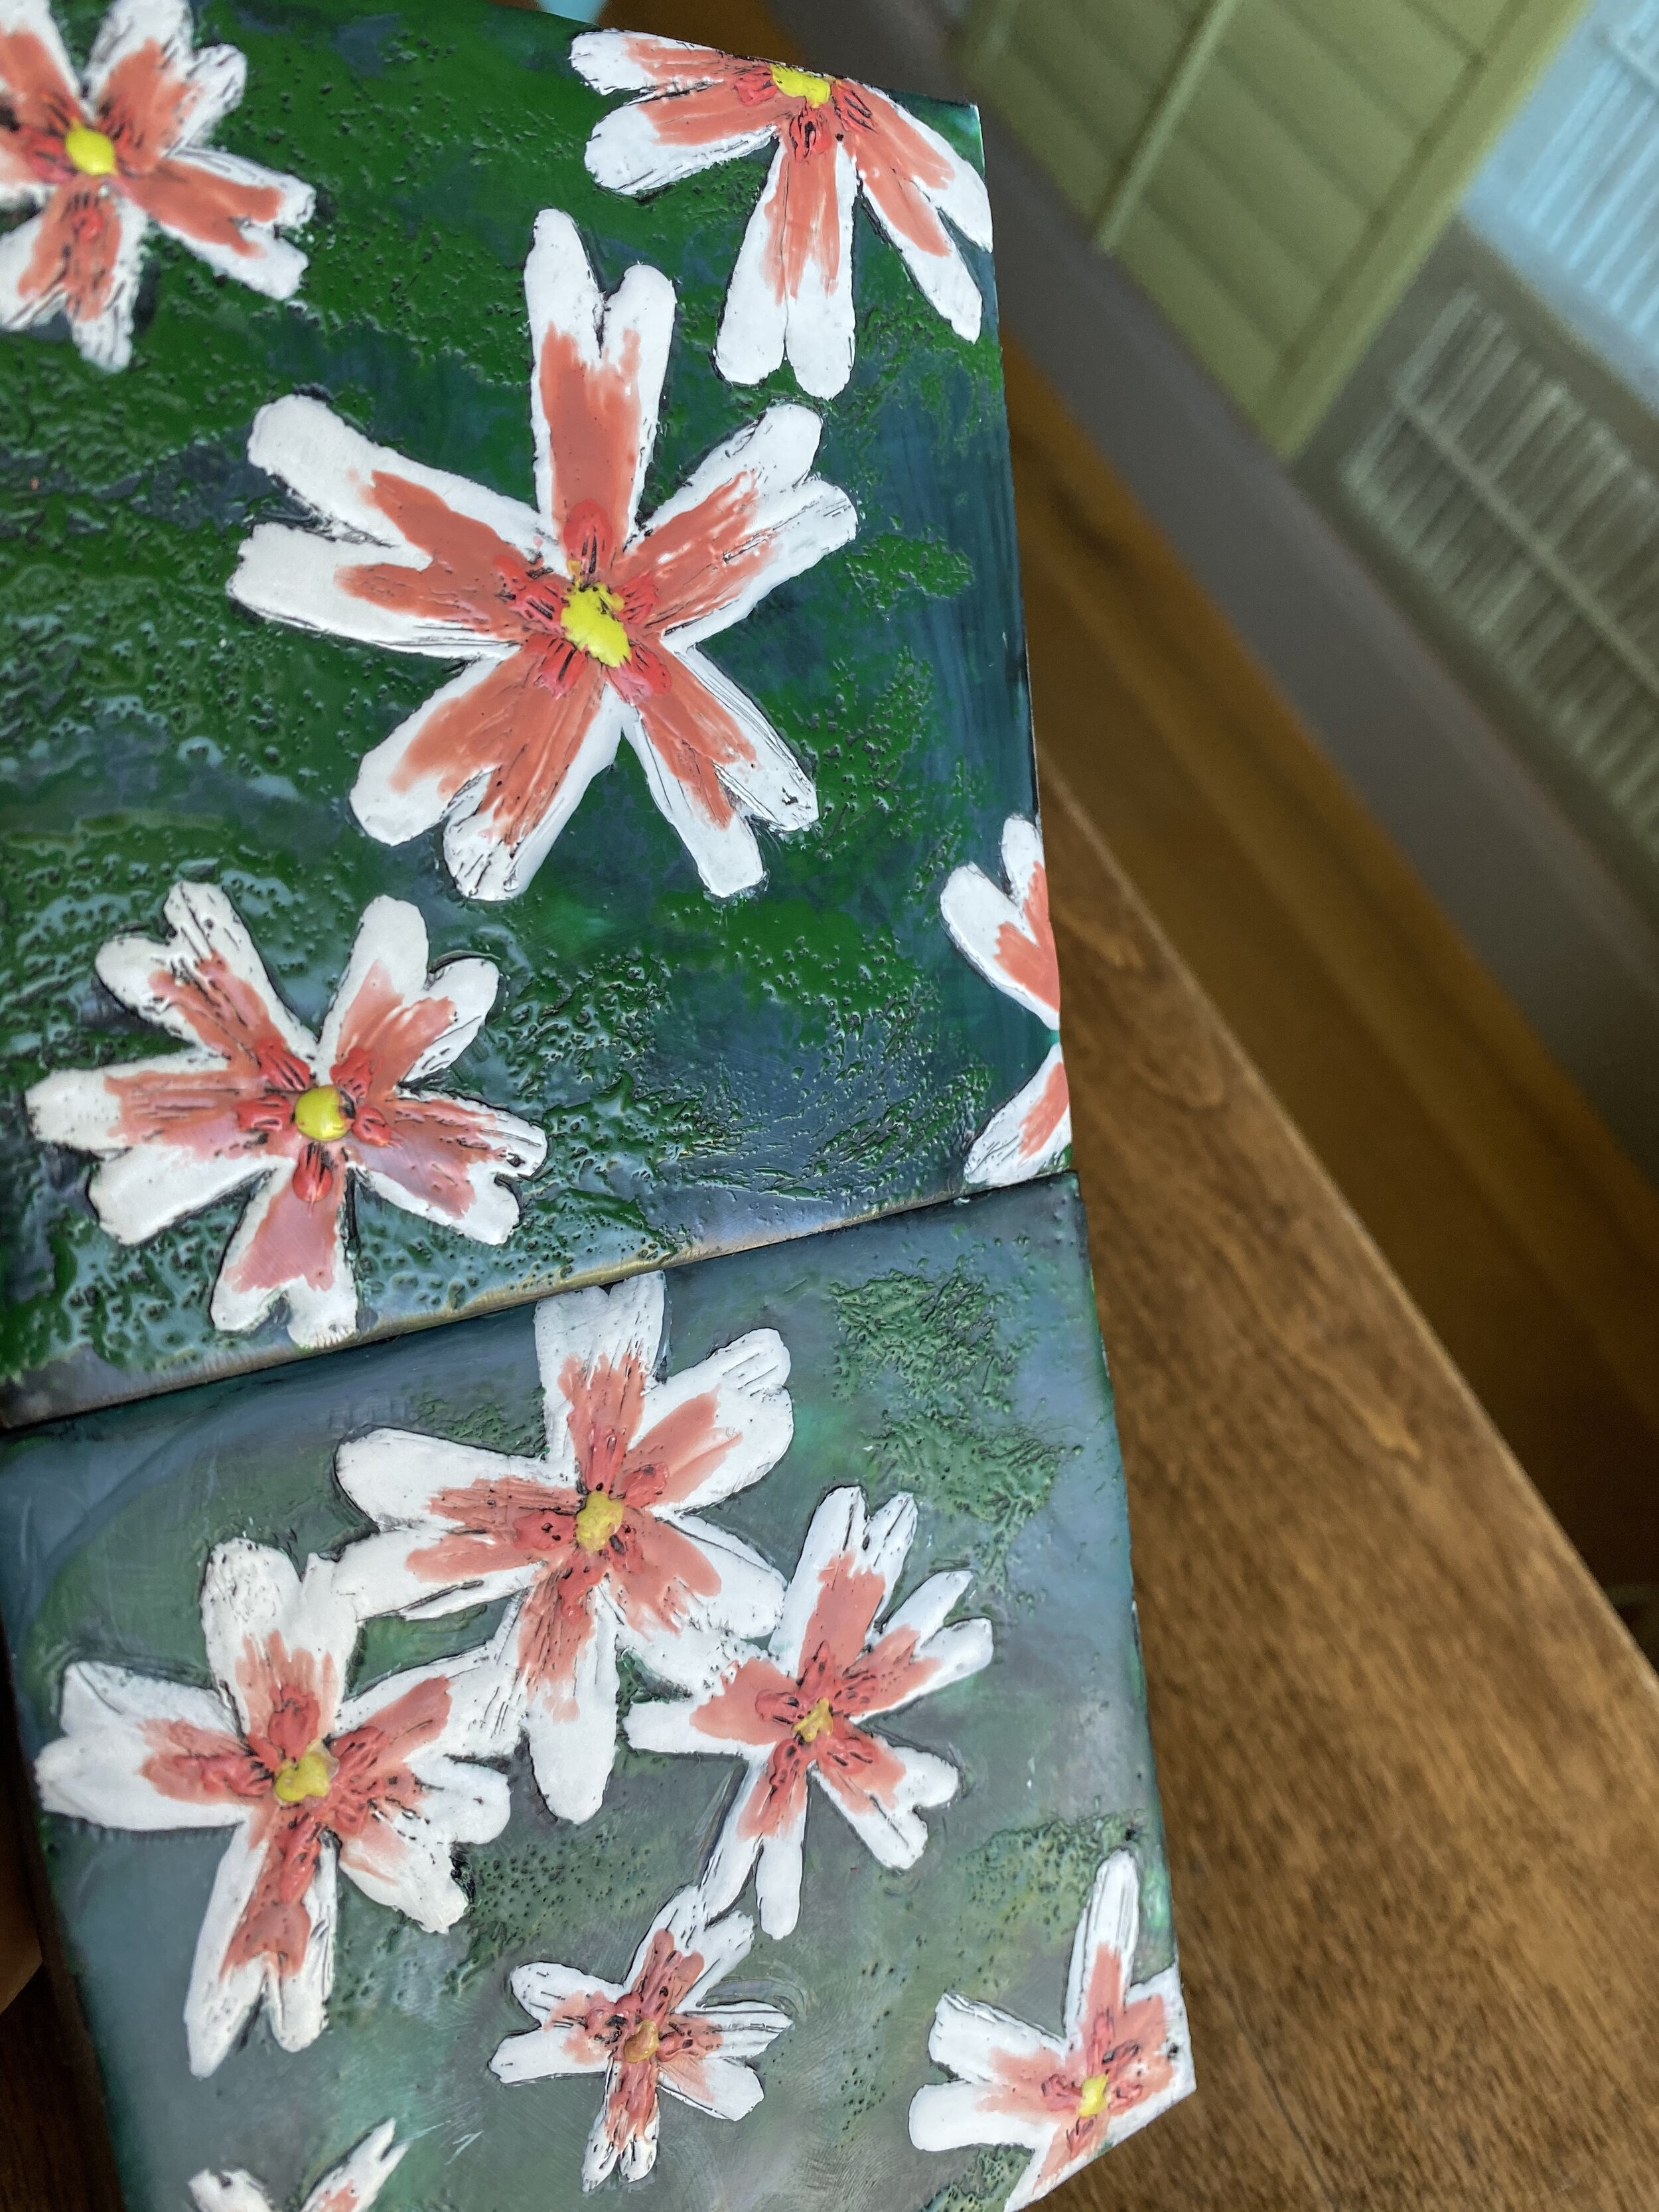 Bloom - The top painting has been buffed with a eye glass cloth. The similar painting on the bottom has not. You can see the difference in shine.